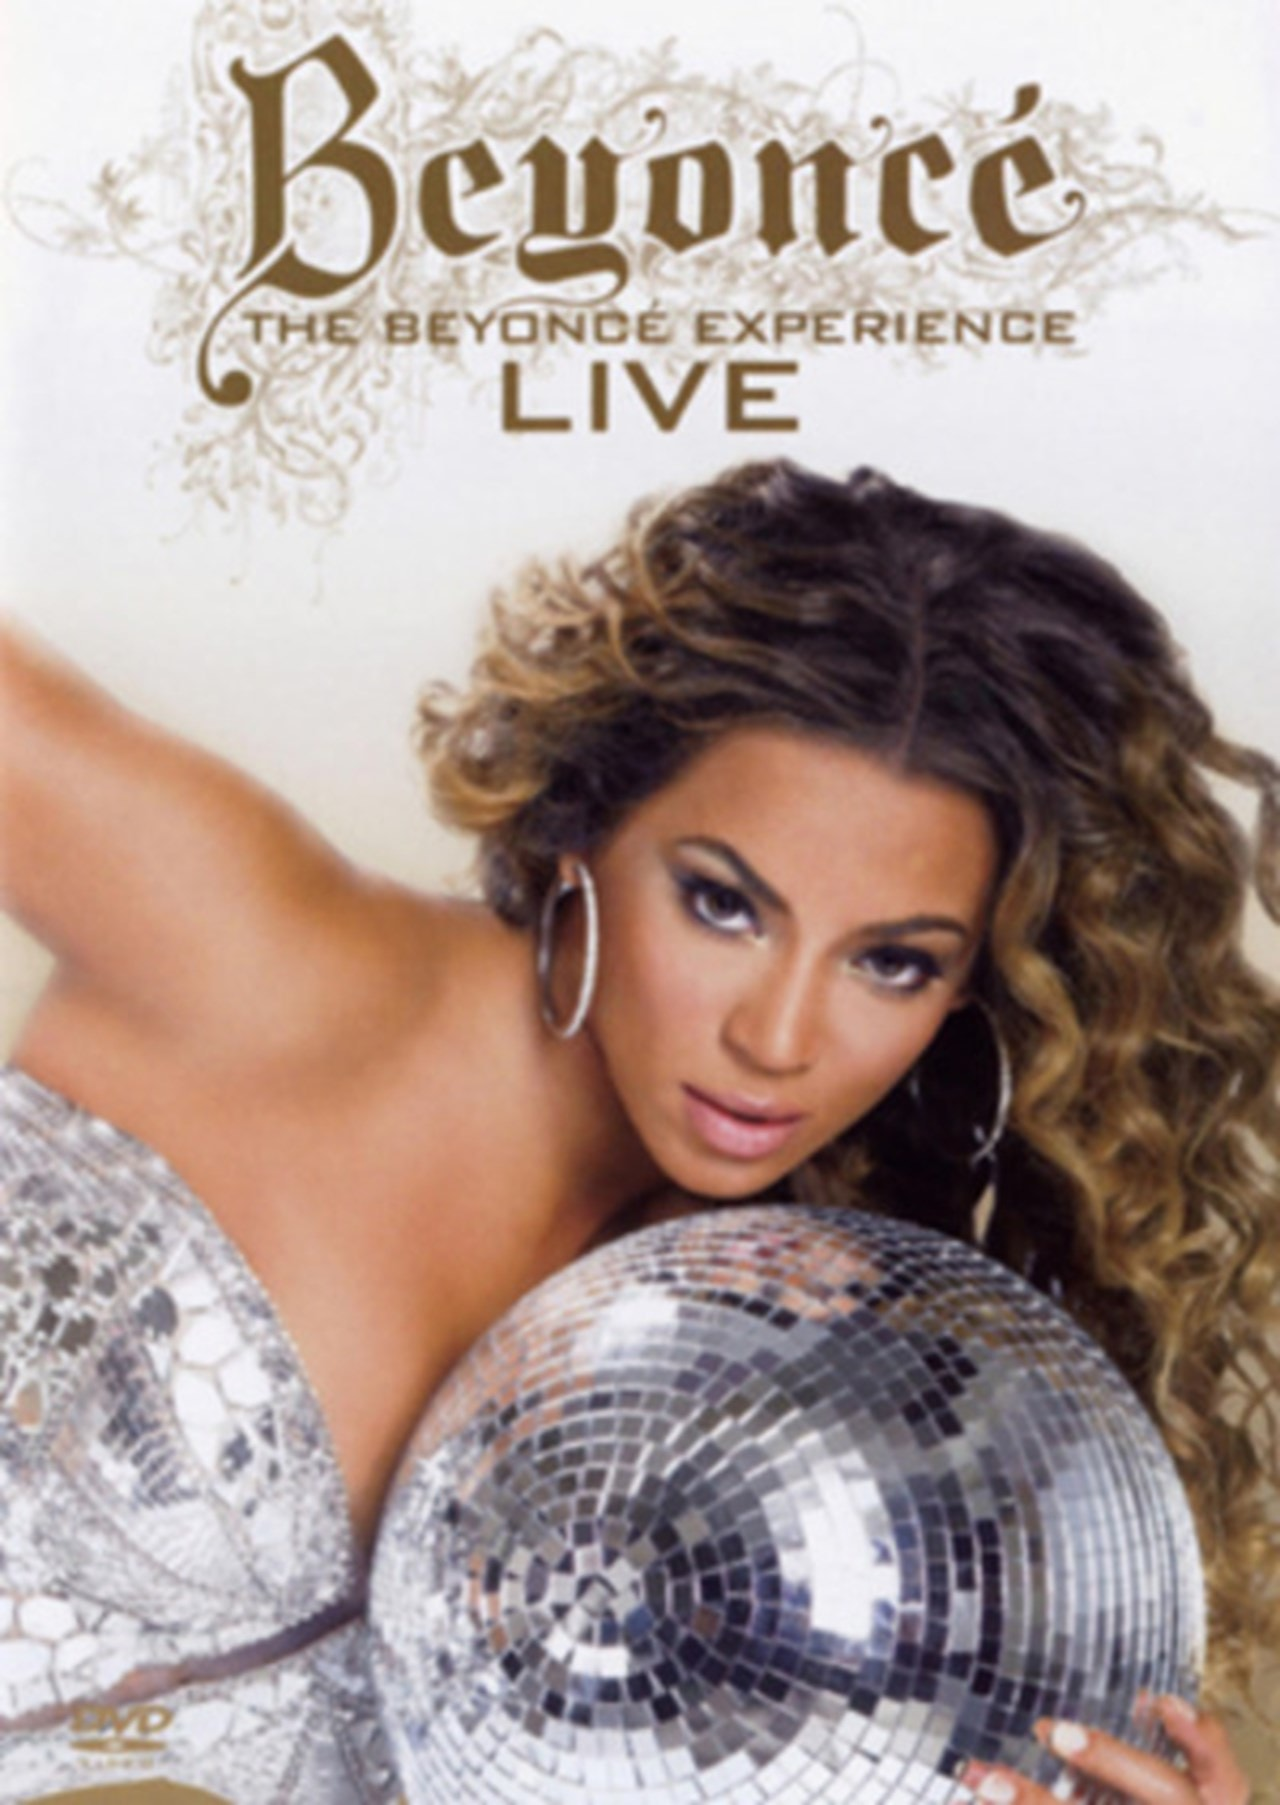 Beyonce: The Beyonce Experience - Live - 1